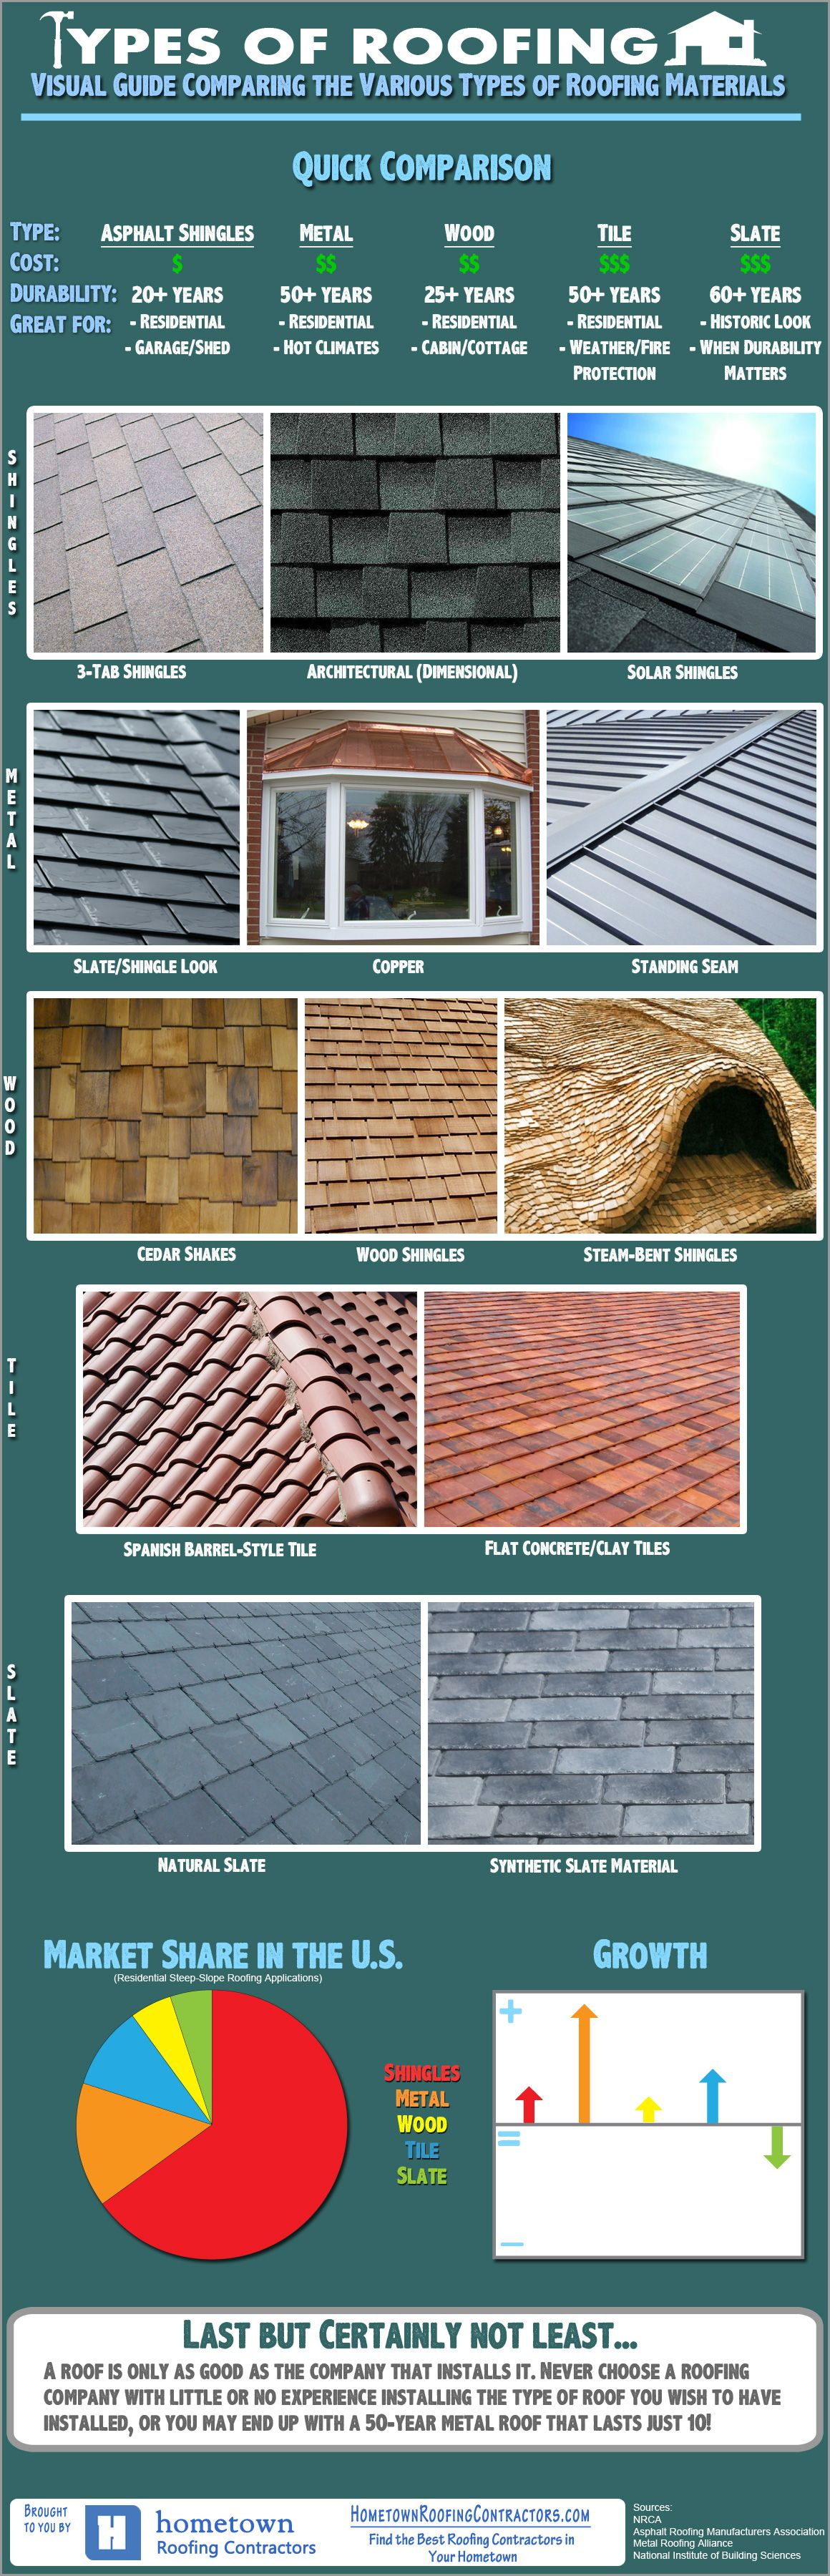 Types of residential steepslope roofing infographic r and d